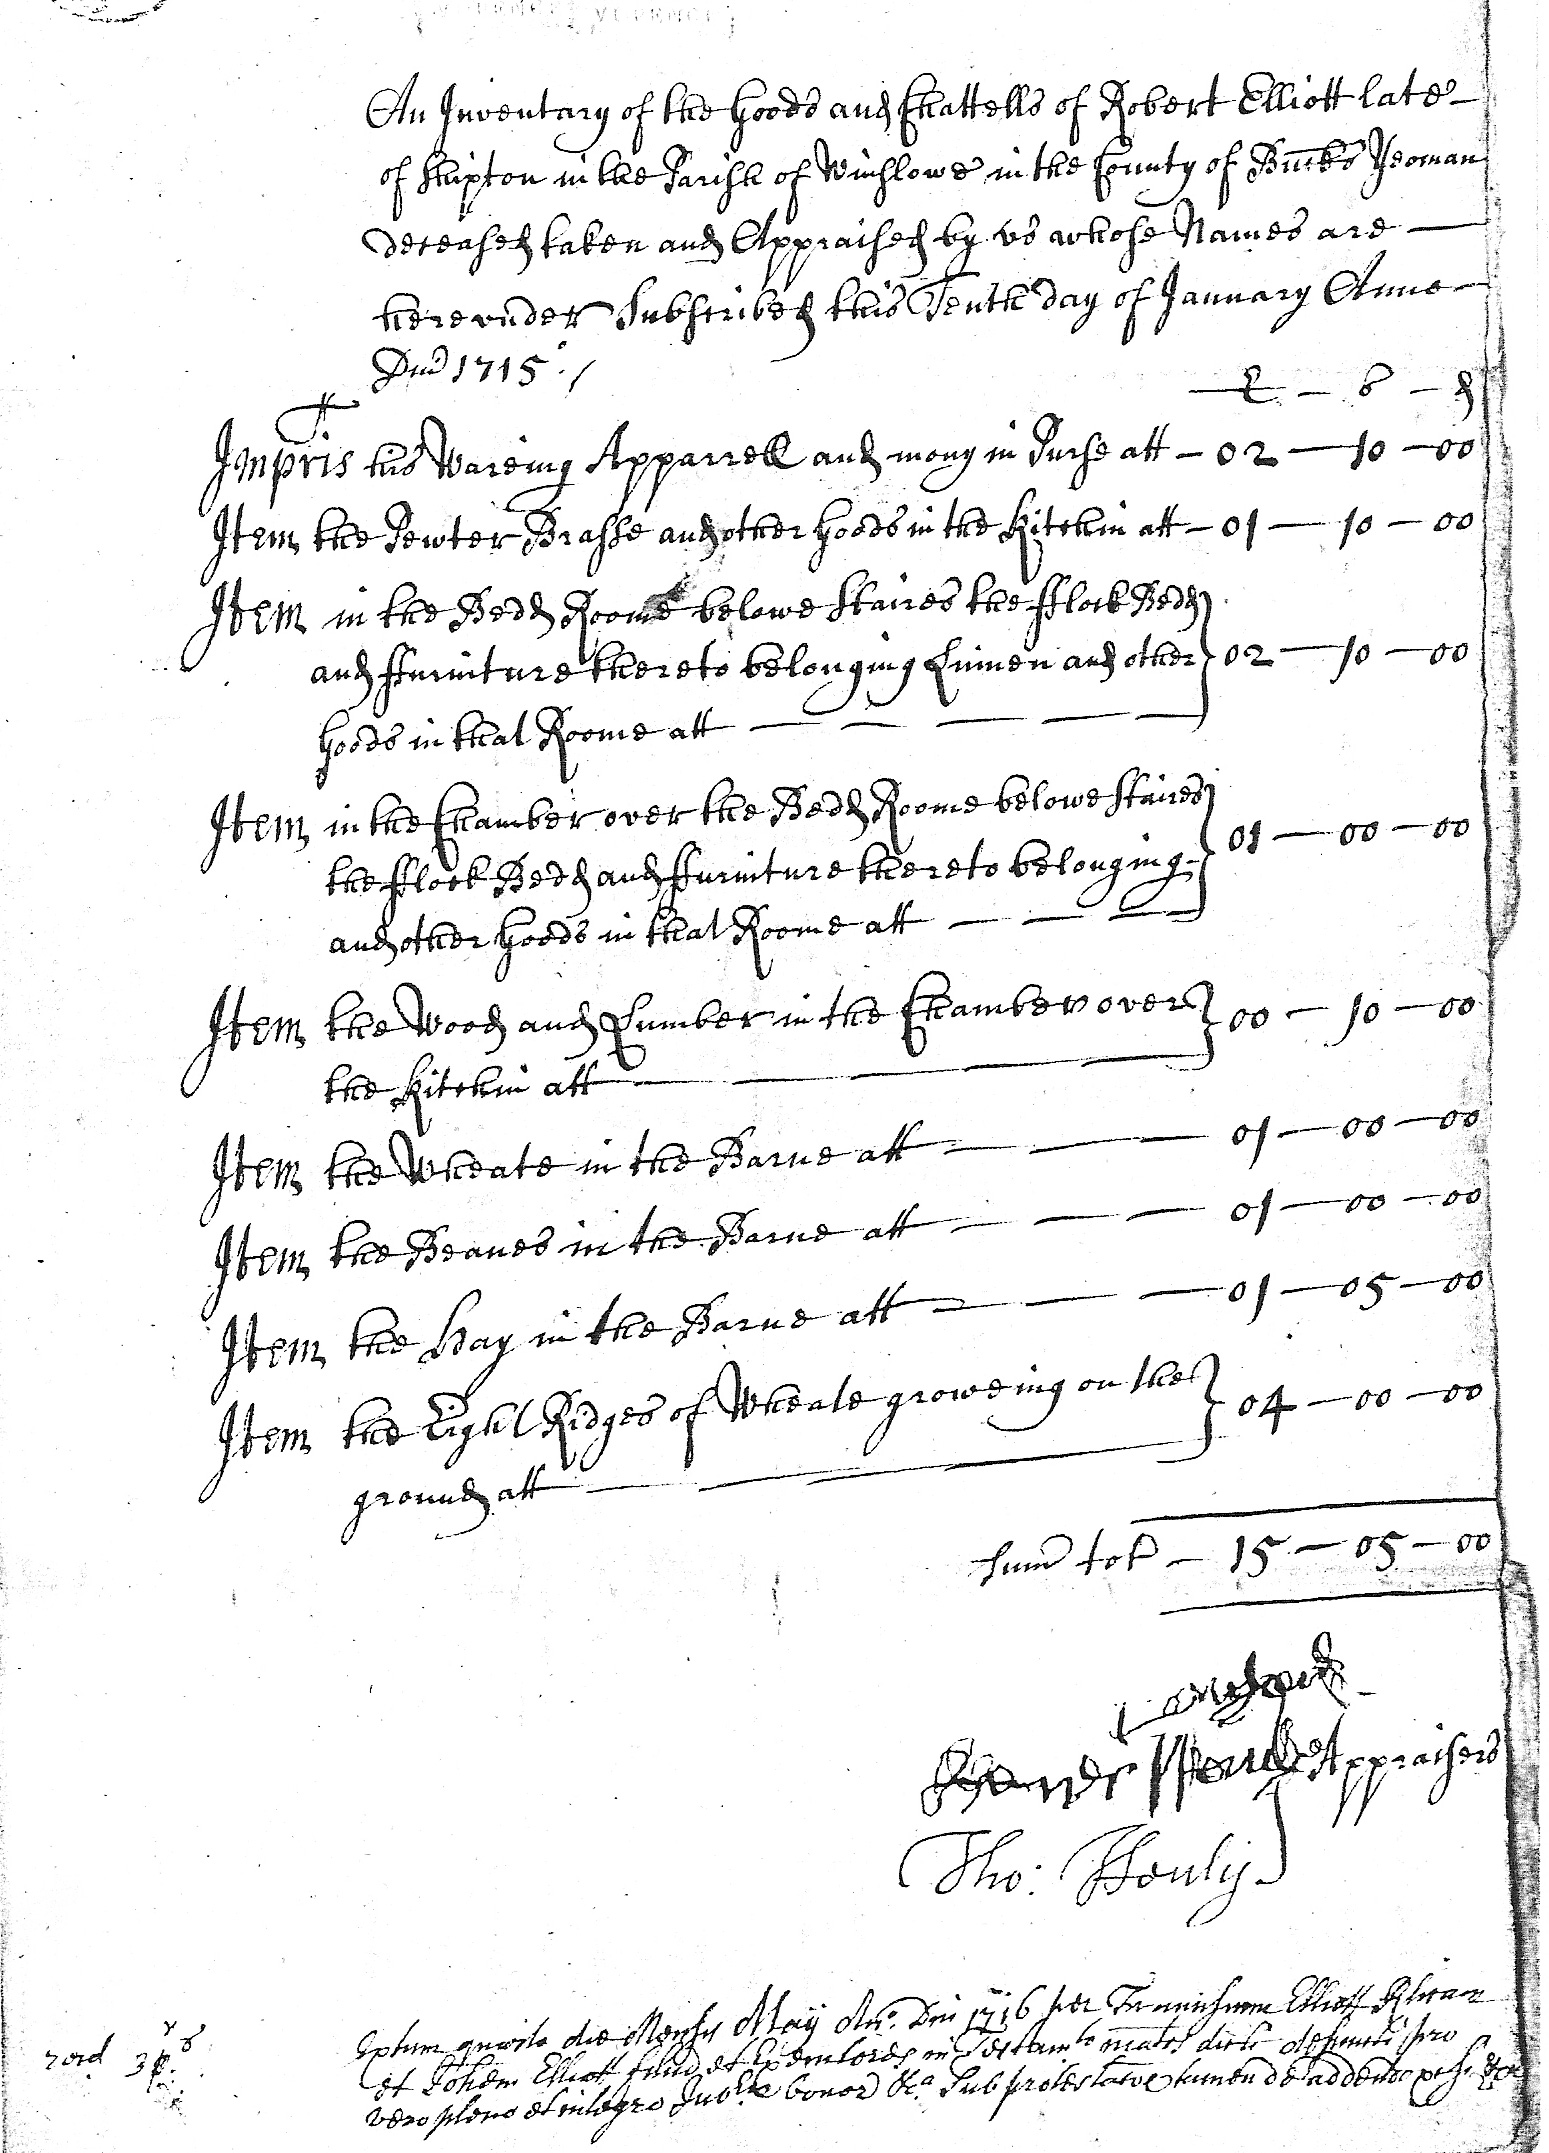 Inventory of Robert Elliott